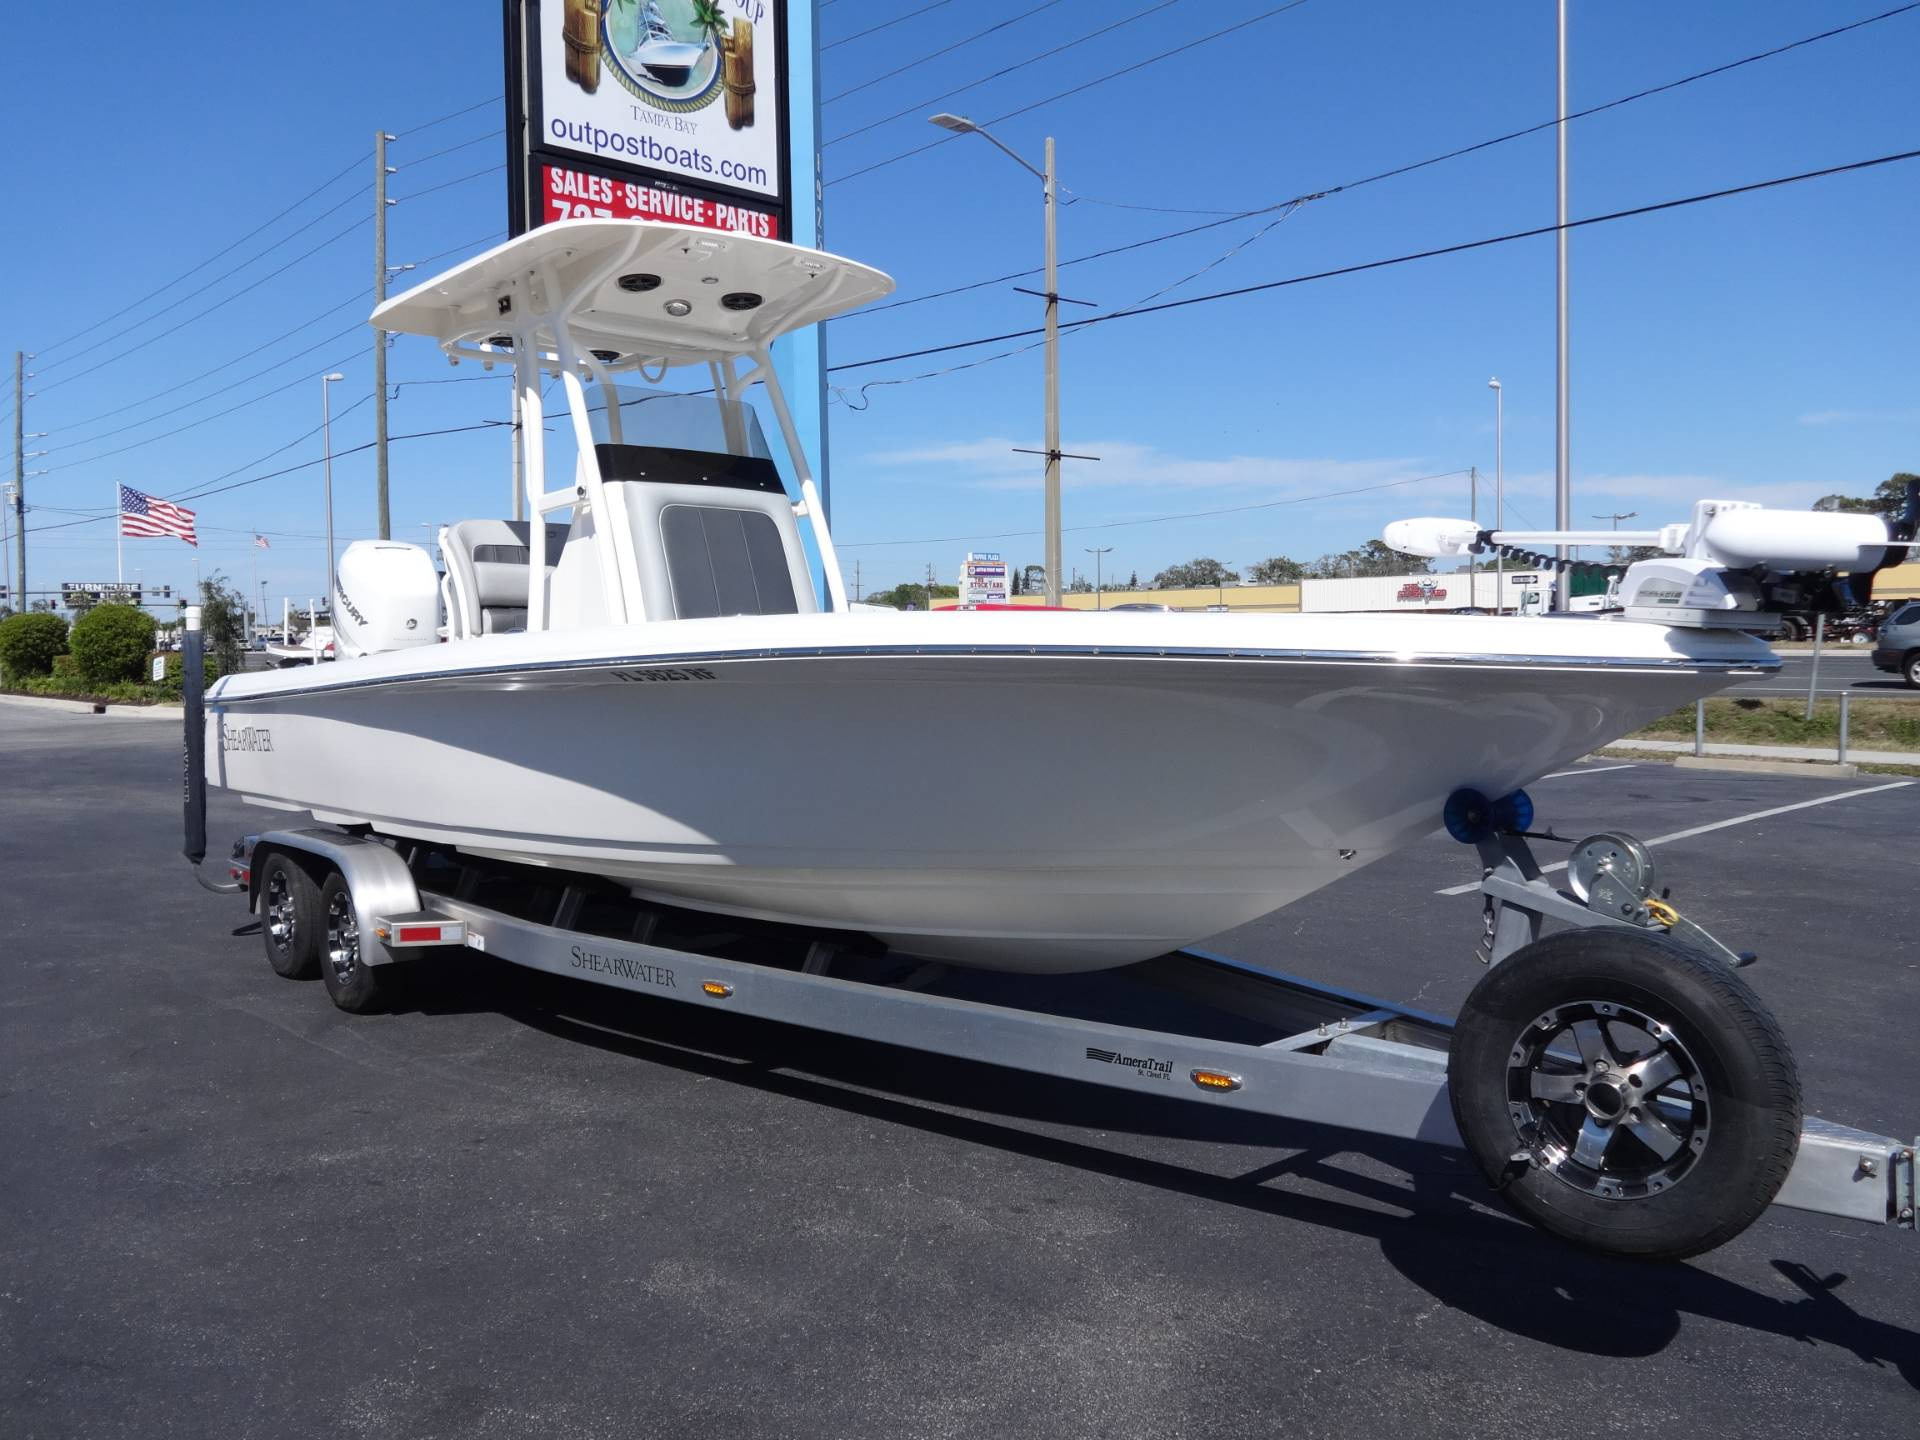 ShearWater 260 Carolina Super Sport